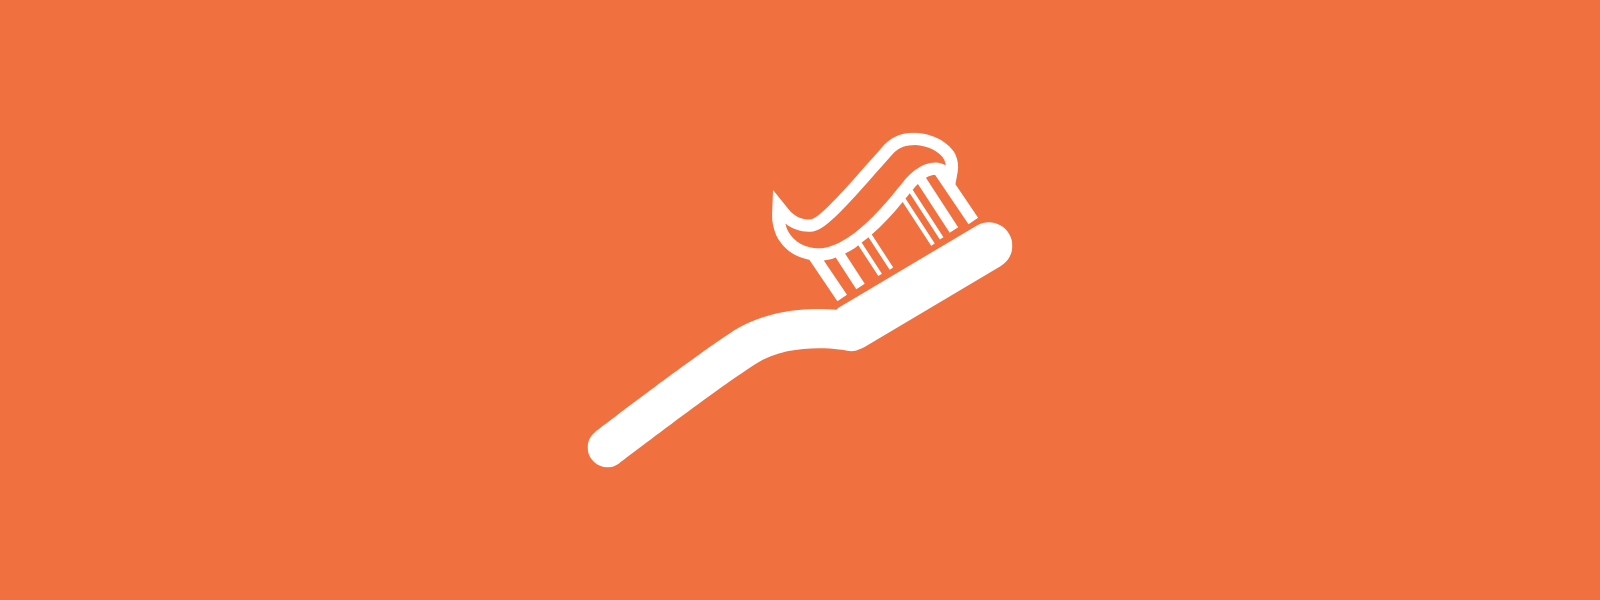 Icon background of toothbrush with toothpaste on it